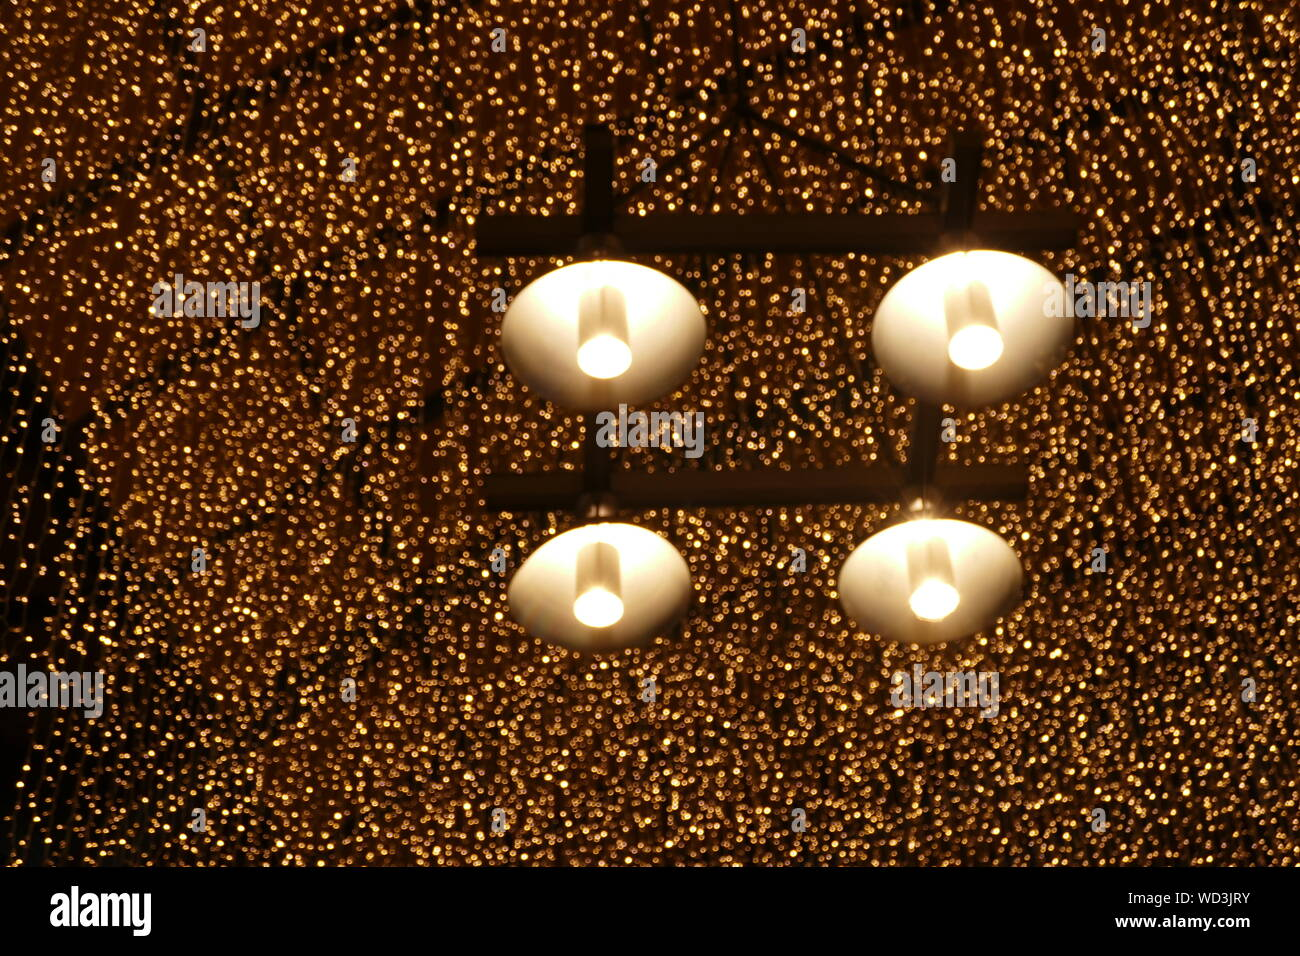 Close Up Of Illuminated Pendant Lights Hanging From Ceiling Stock Photo Alamy